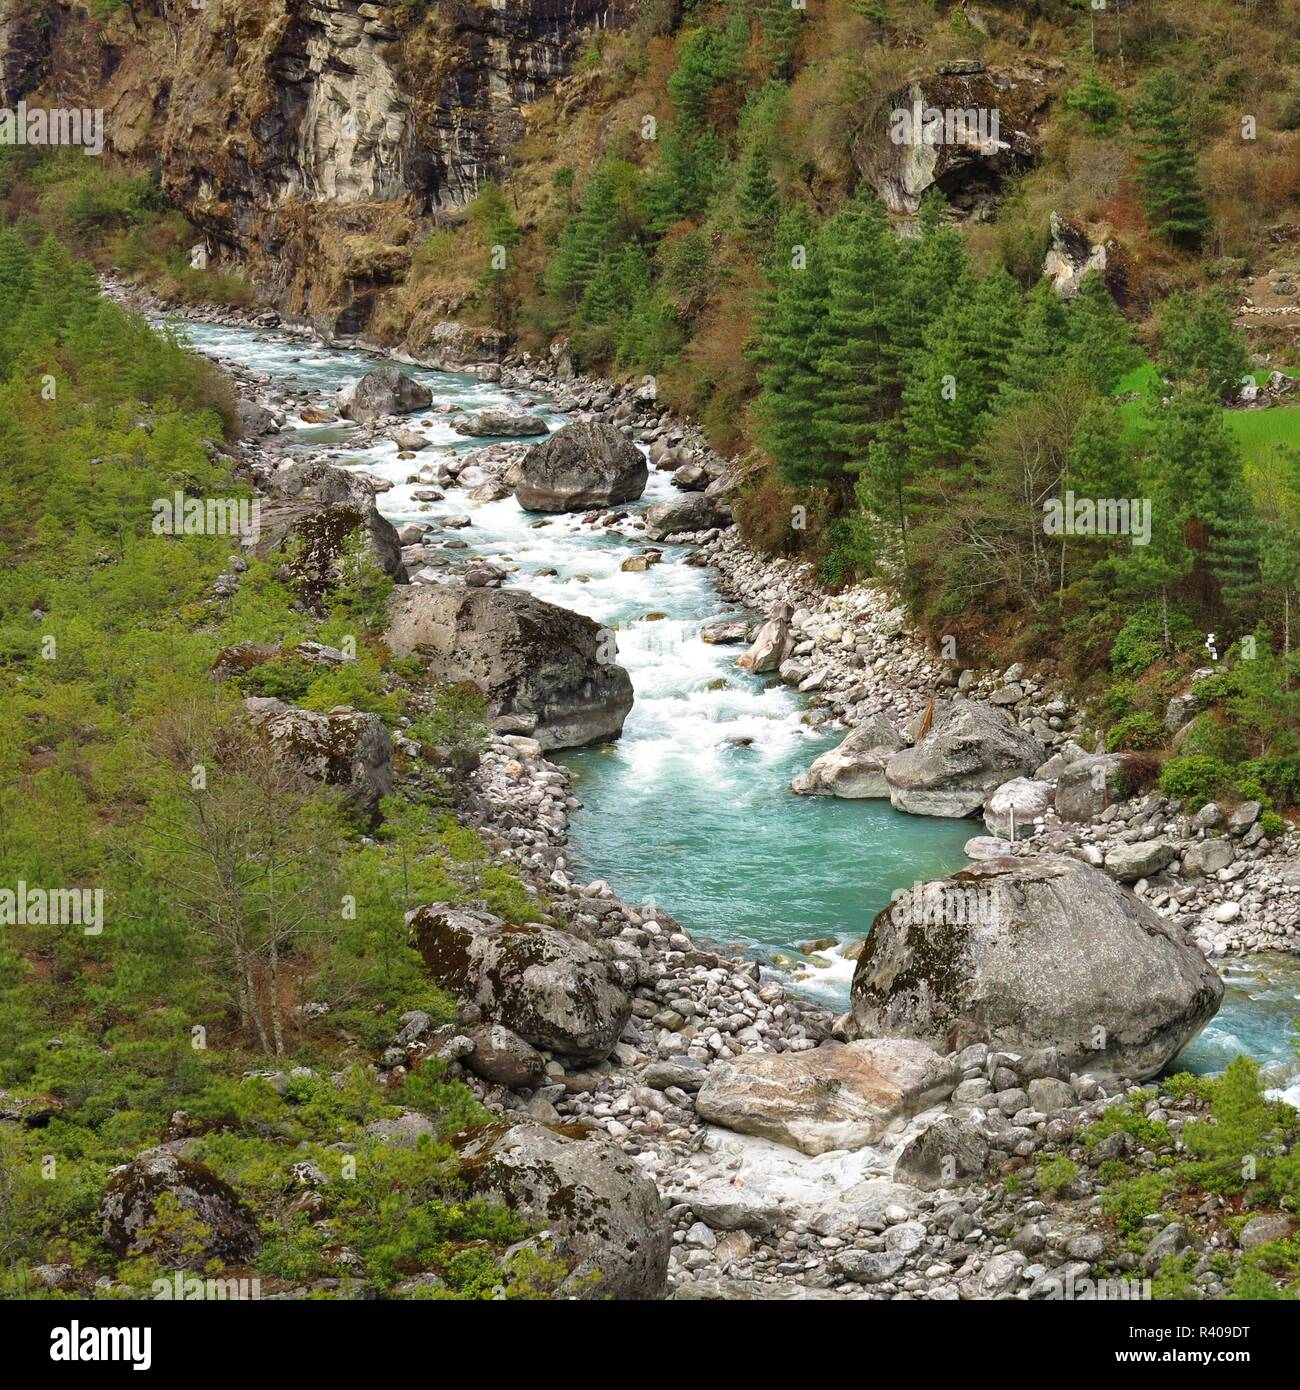 Turquoise colored river Dudh Kosi. Mount Everest National Park, Nepal. - Stock Image